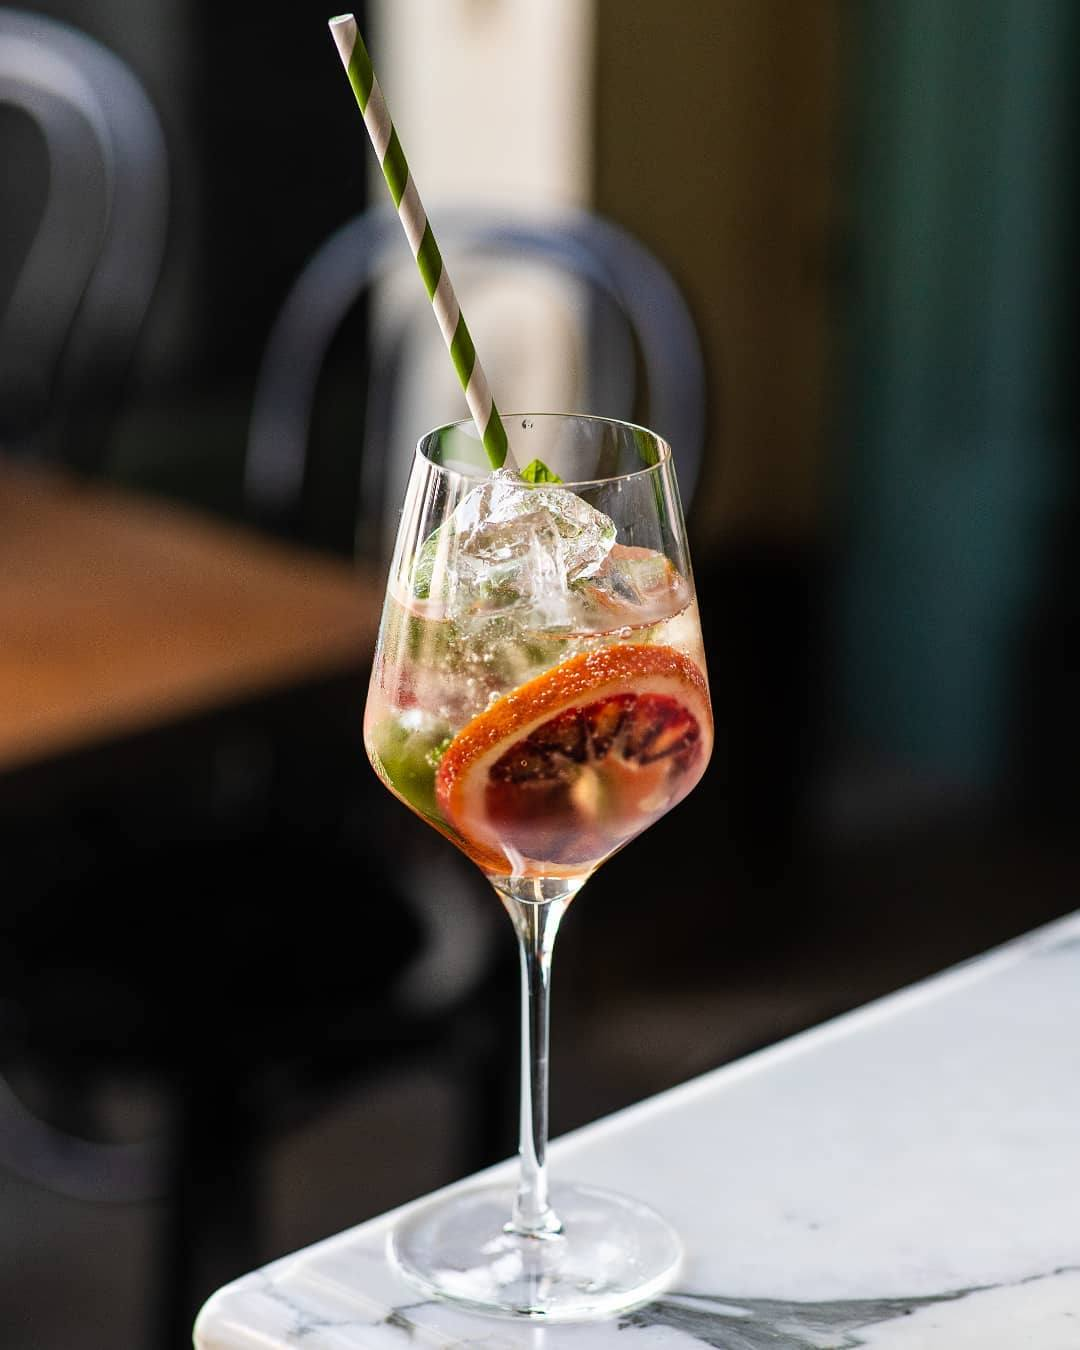 Penelope Spritz at Cafe Birdie | Photo: @cafebirdiela, Instagram